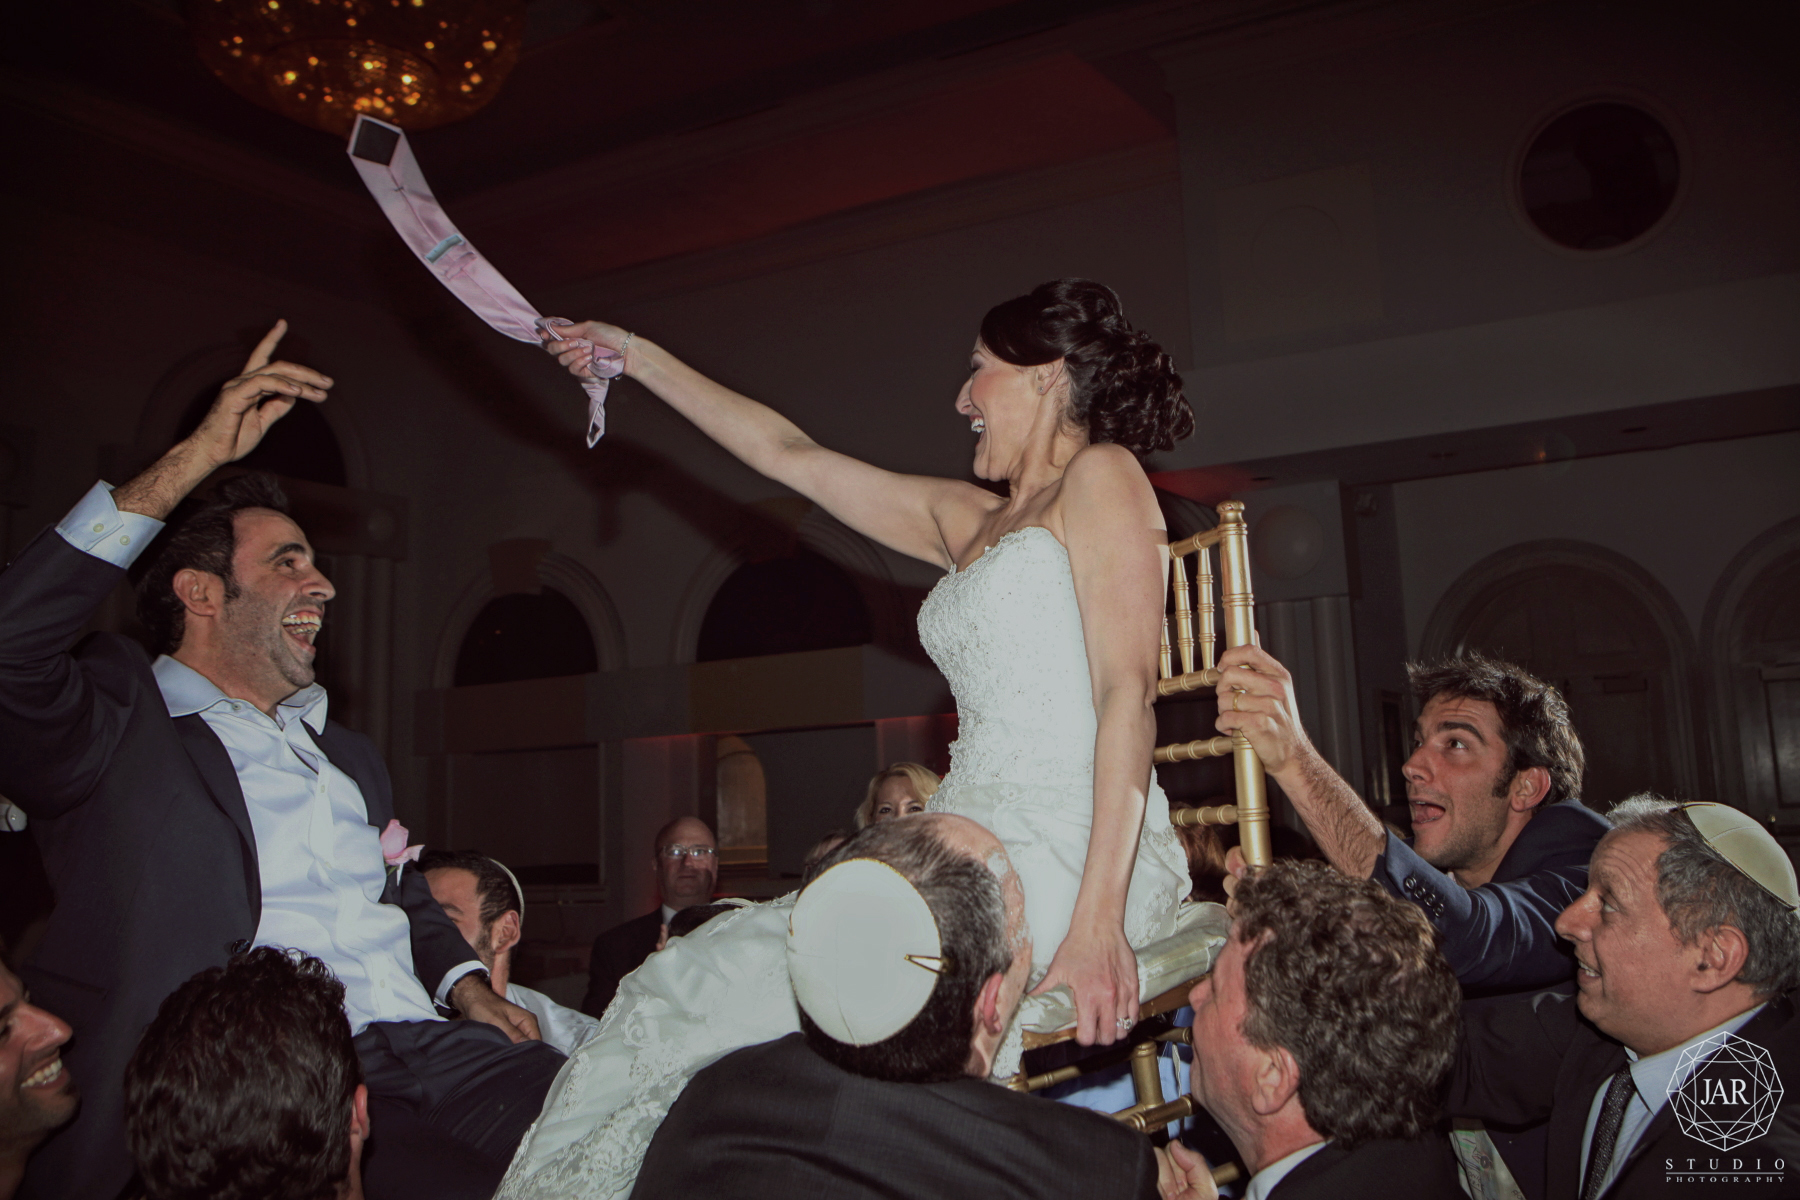 33-chair-dance-jewish-wedding-jarstudio-photography-orlando-fl.JPG